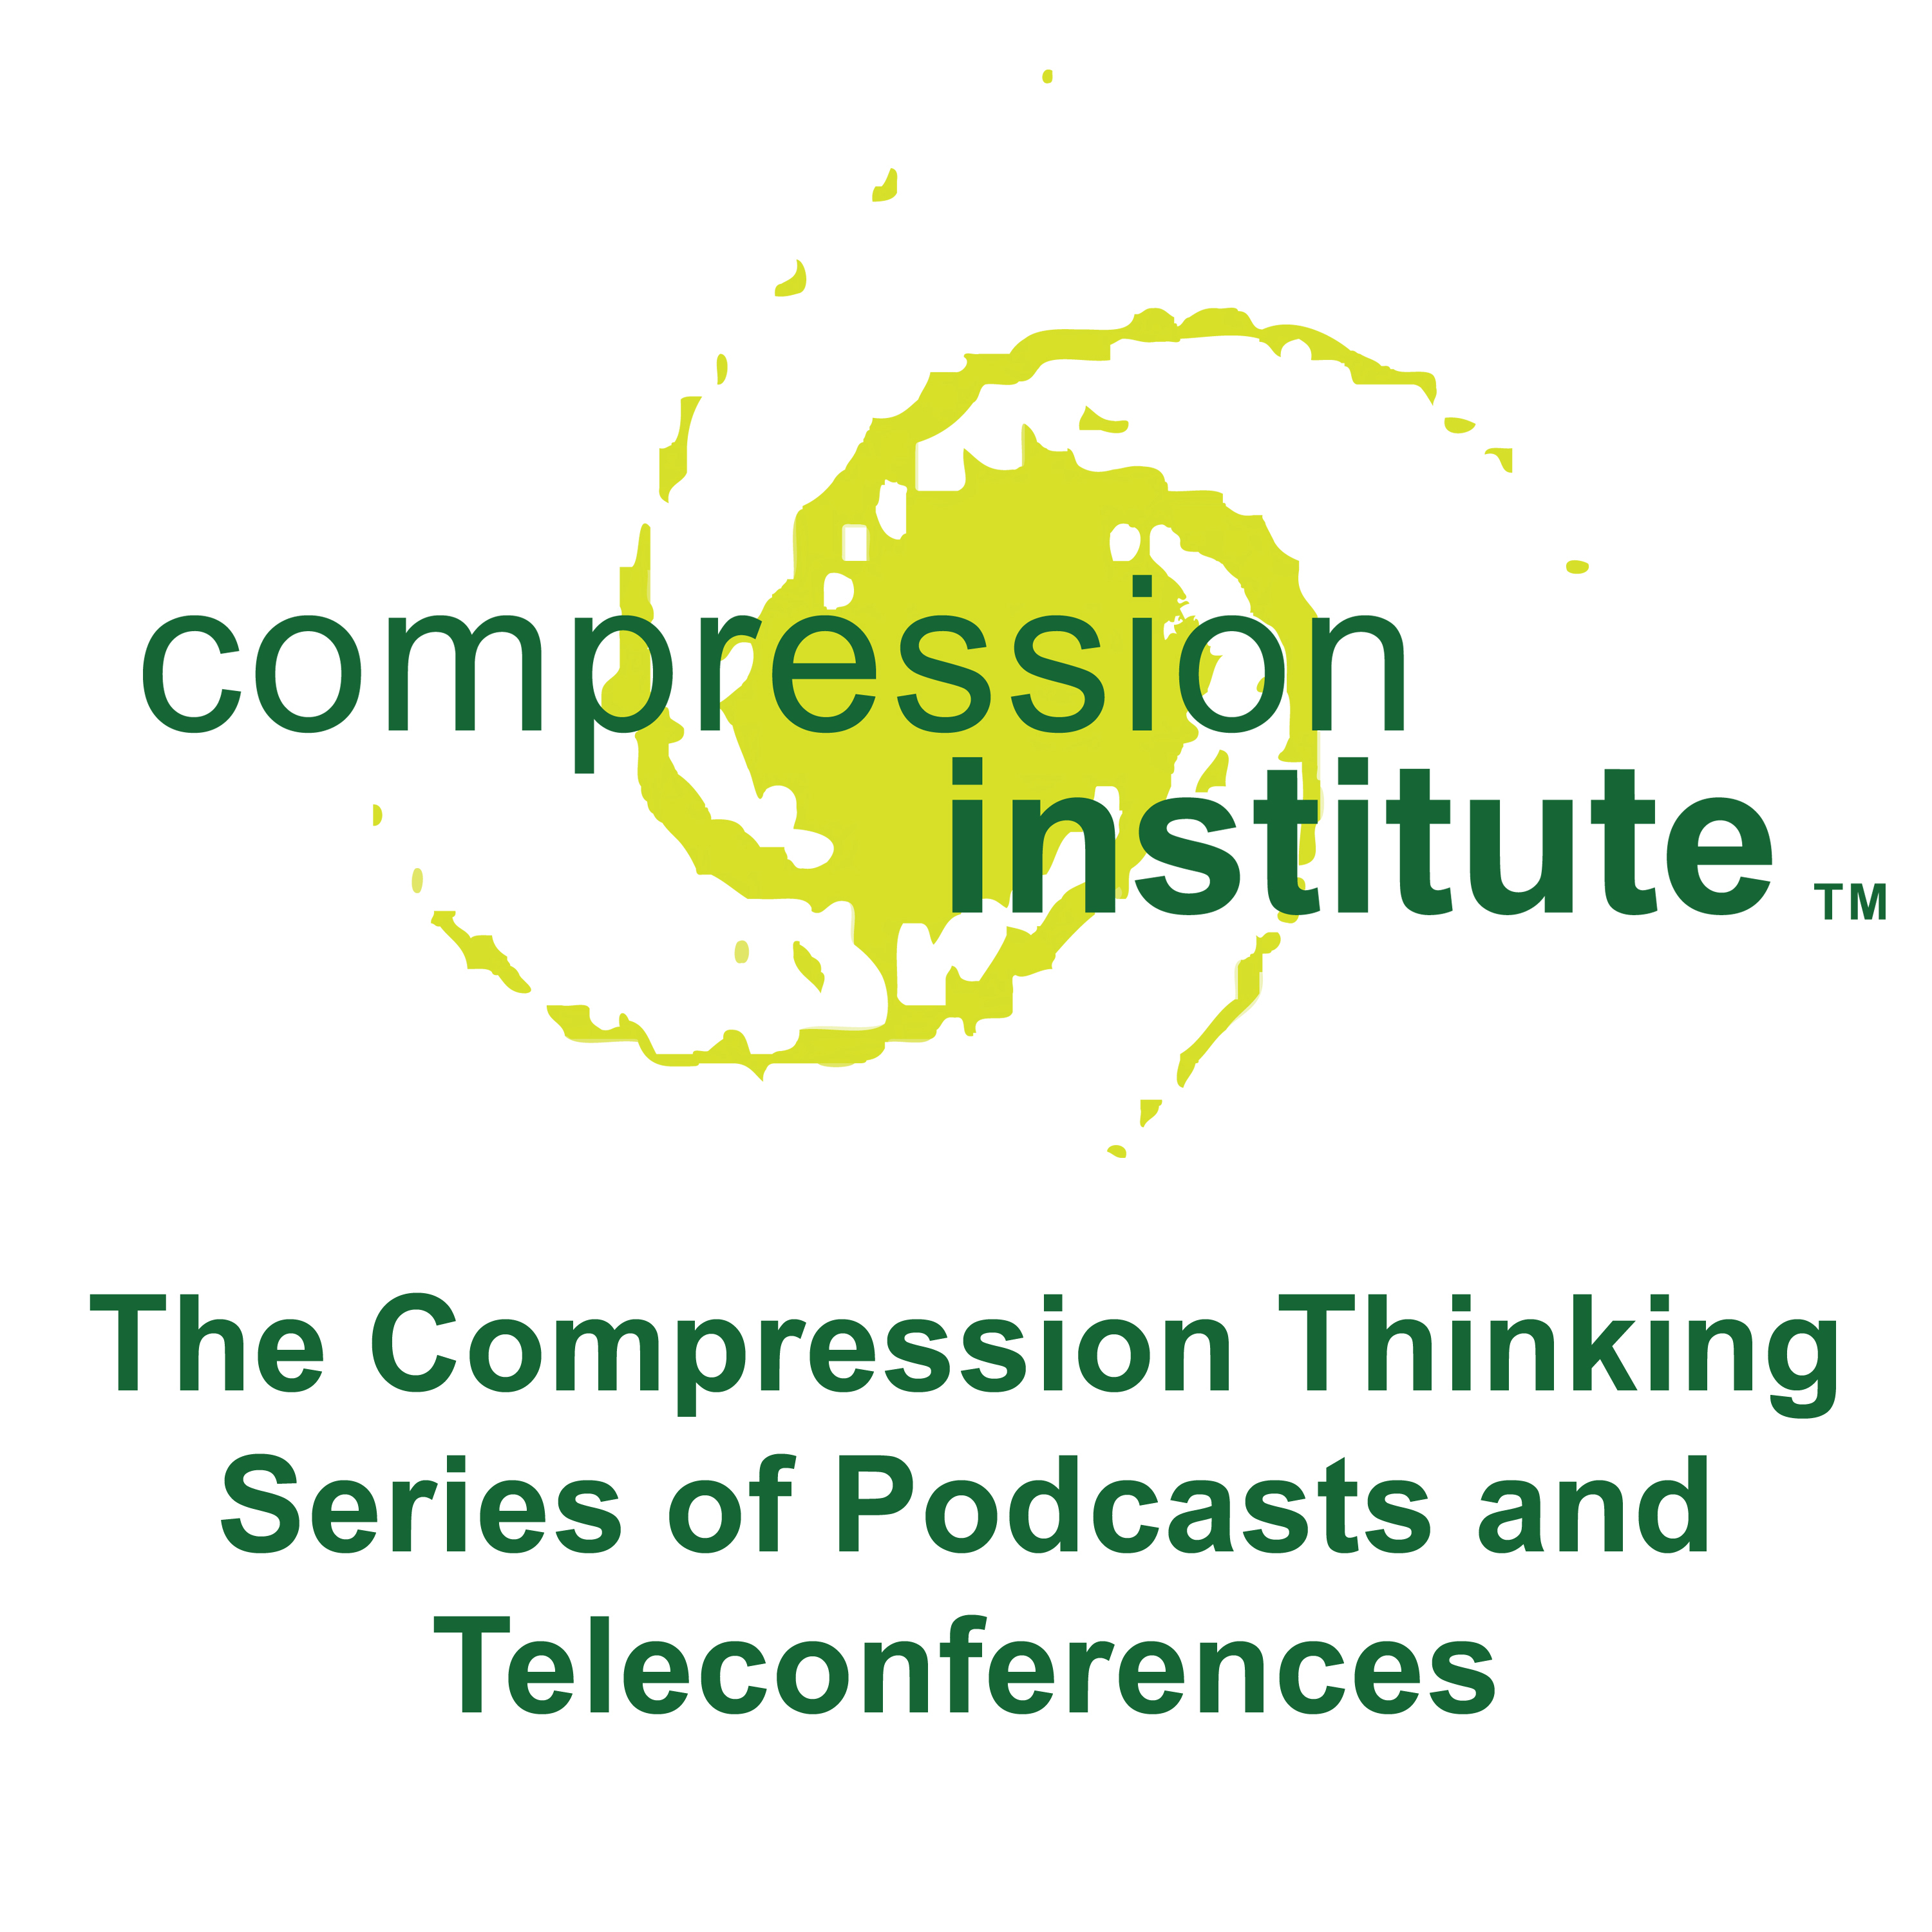 The Compression Thinking Series of Podcasts and Teleconferences